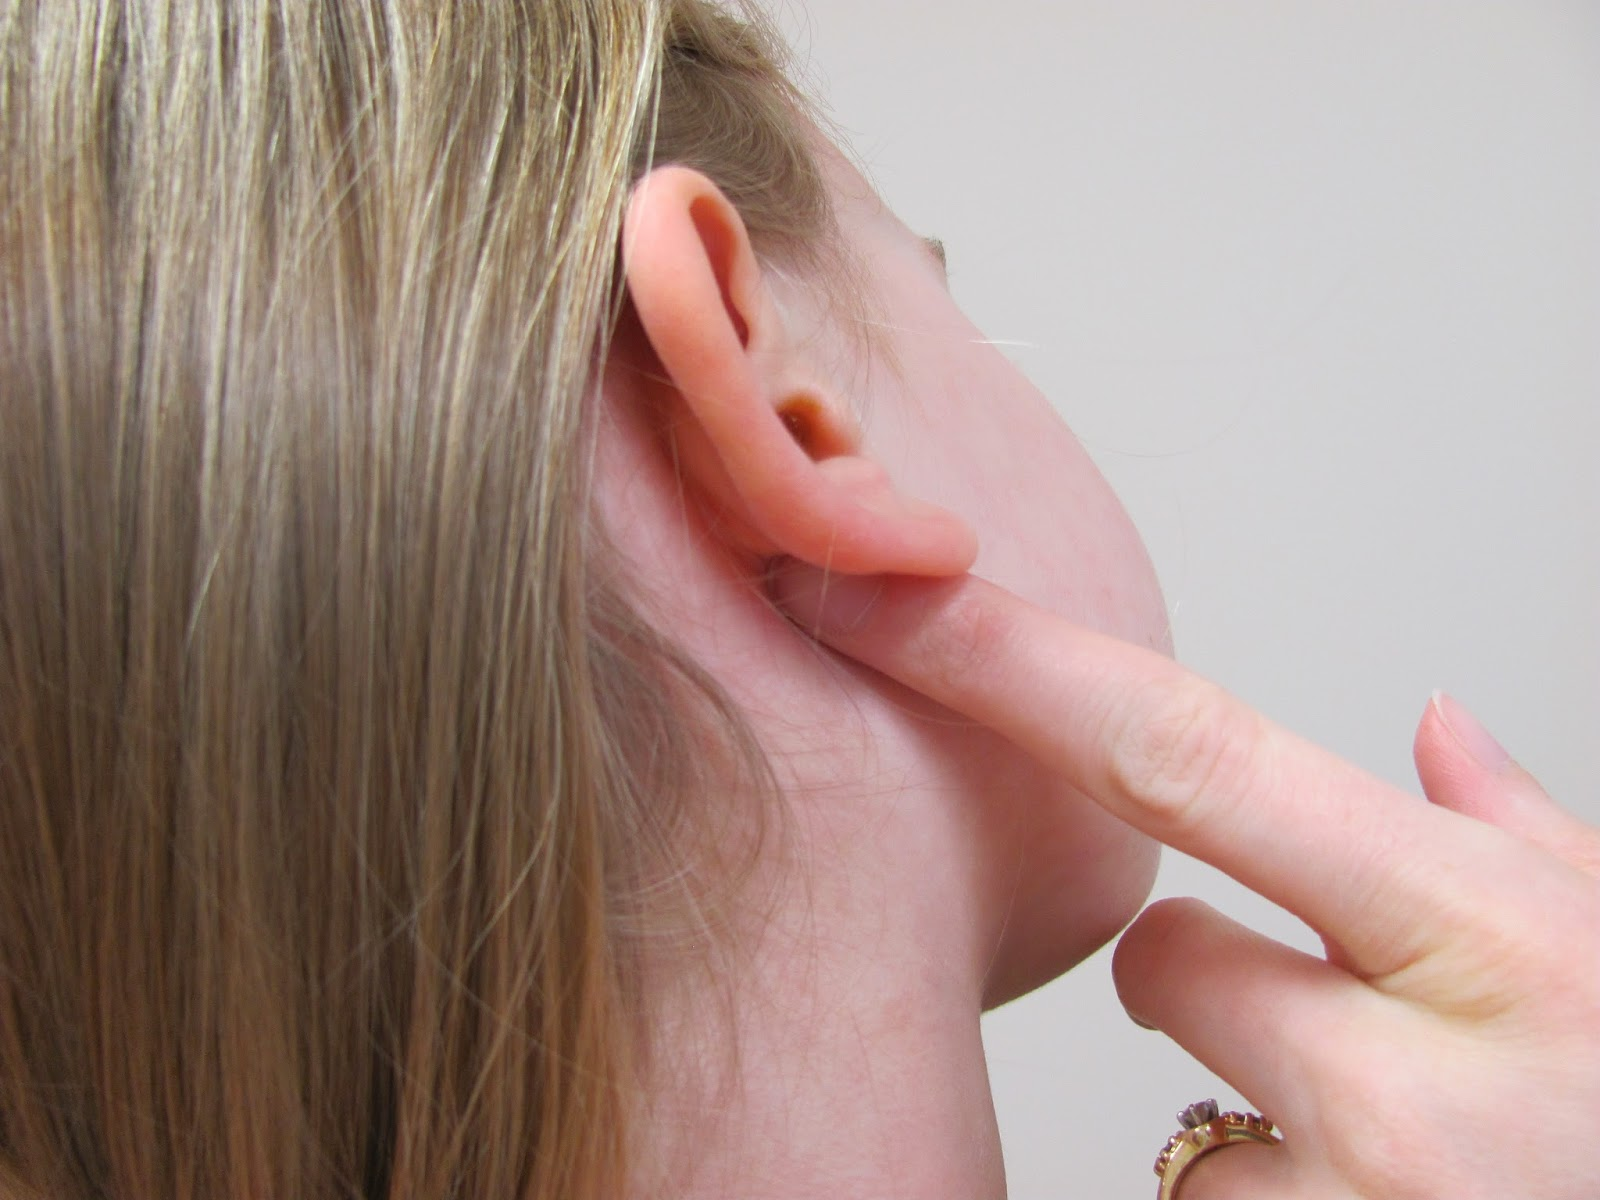 How to Get Rid of an Ear Infection Fast